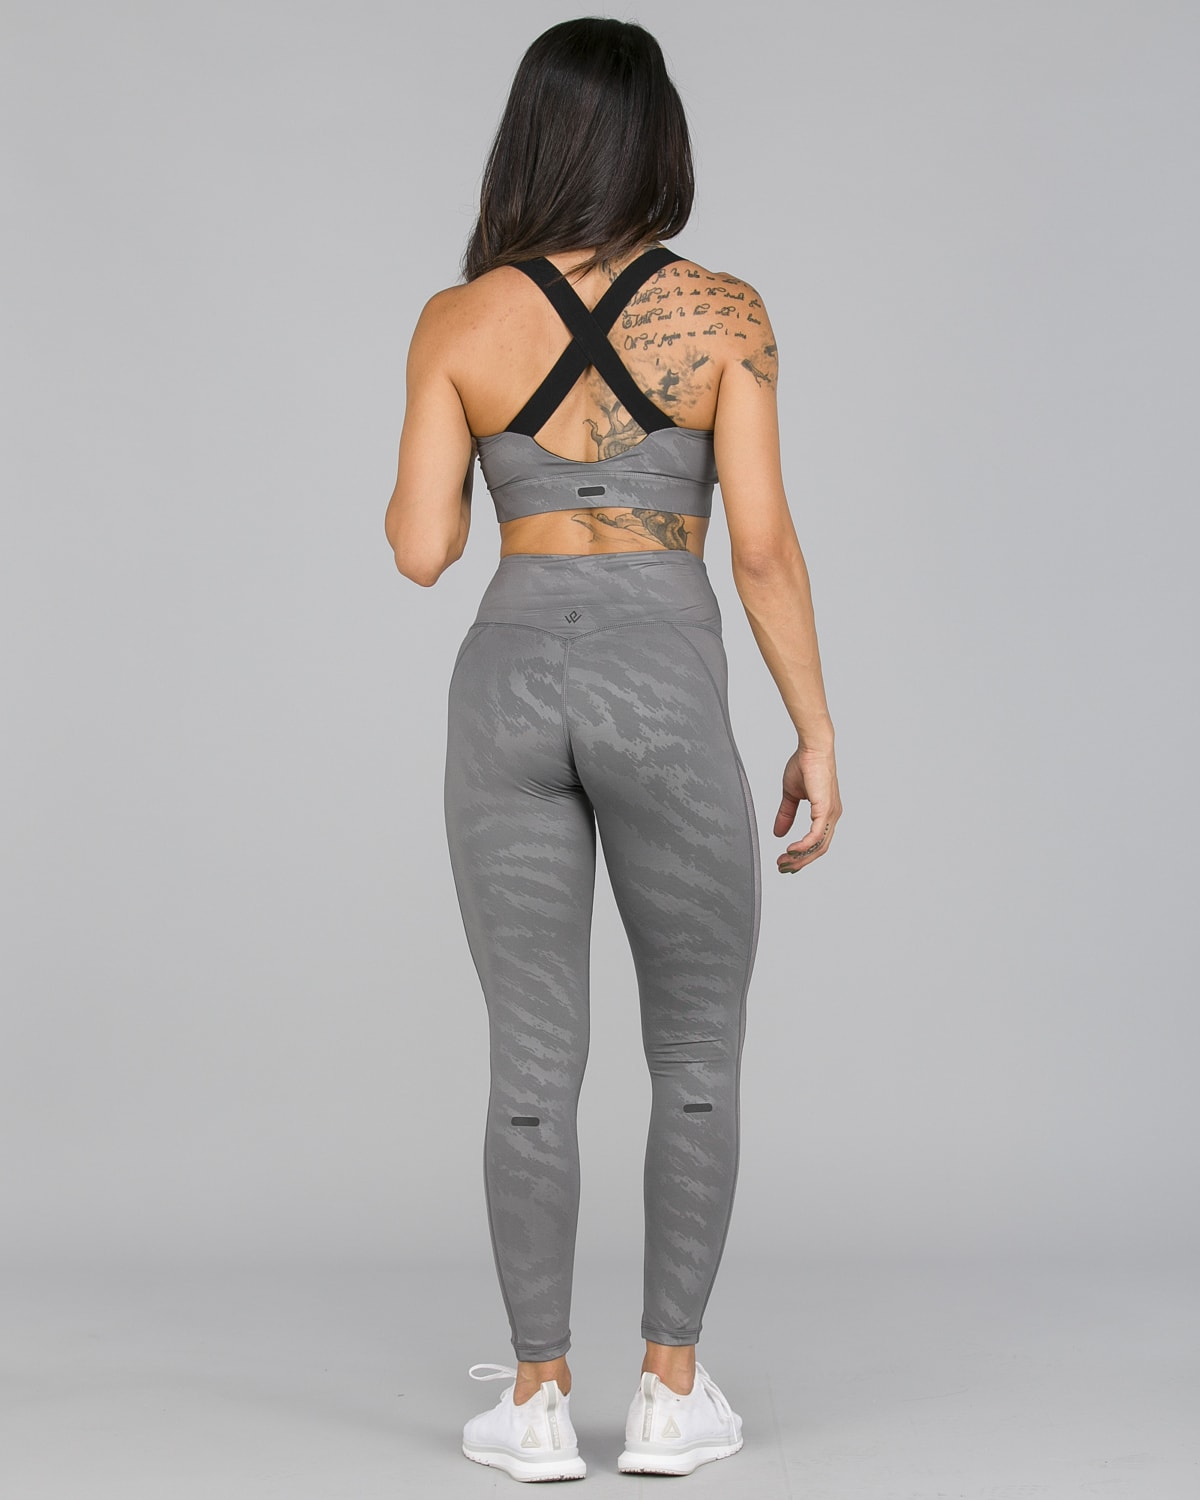 Workout Empire – Elevate Leggings – Silver8